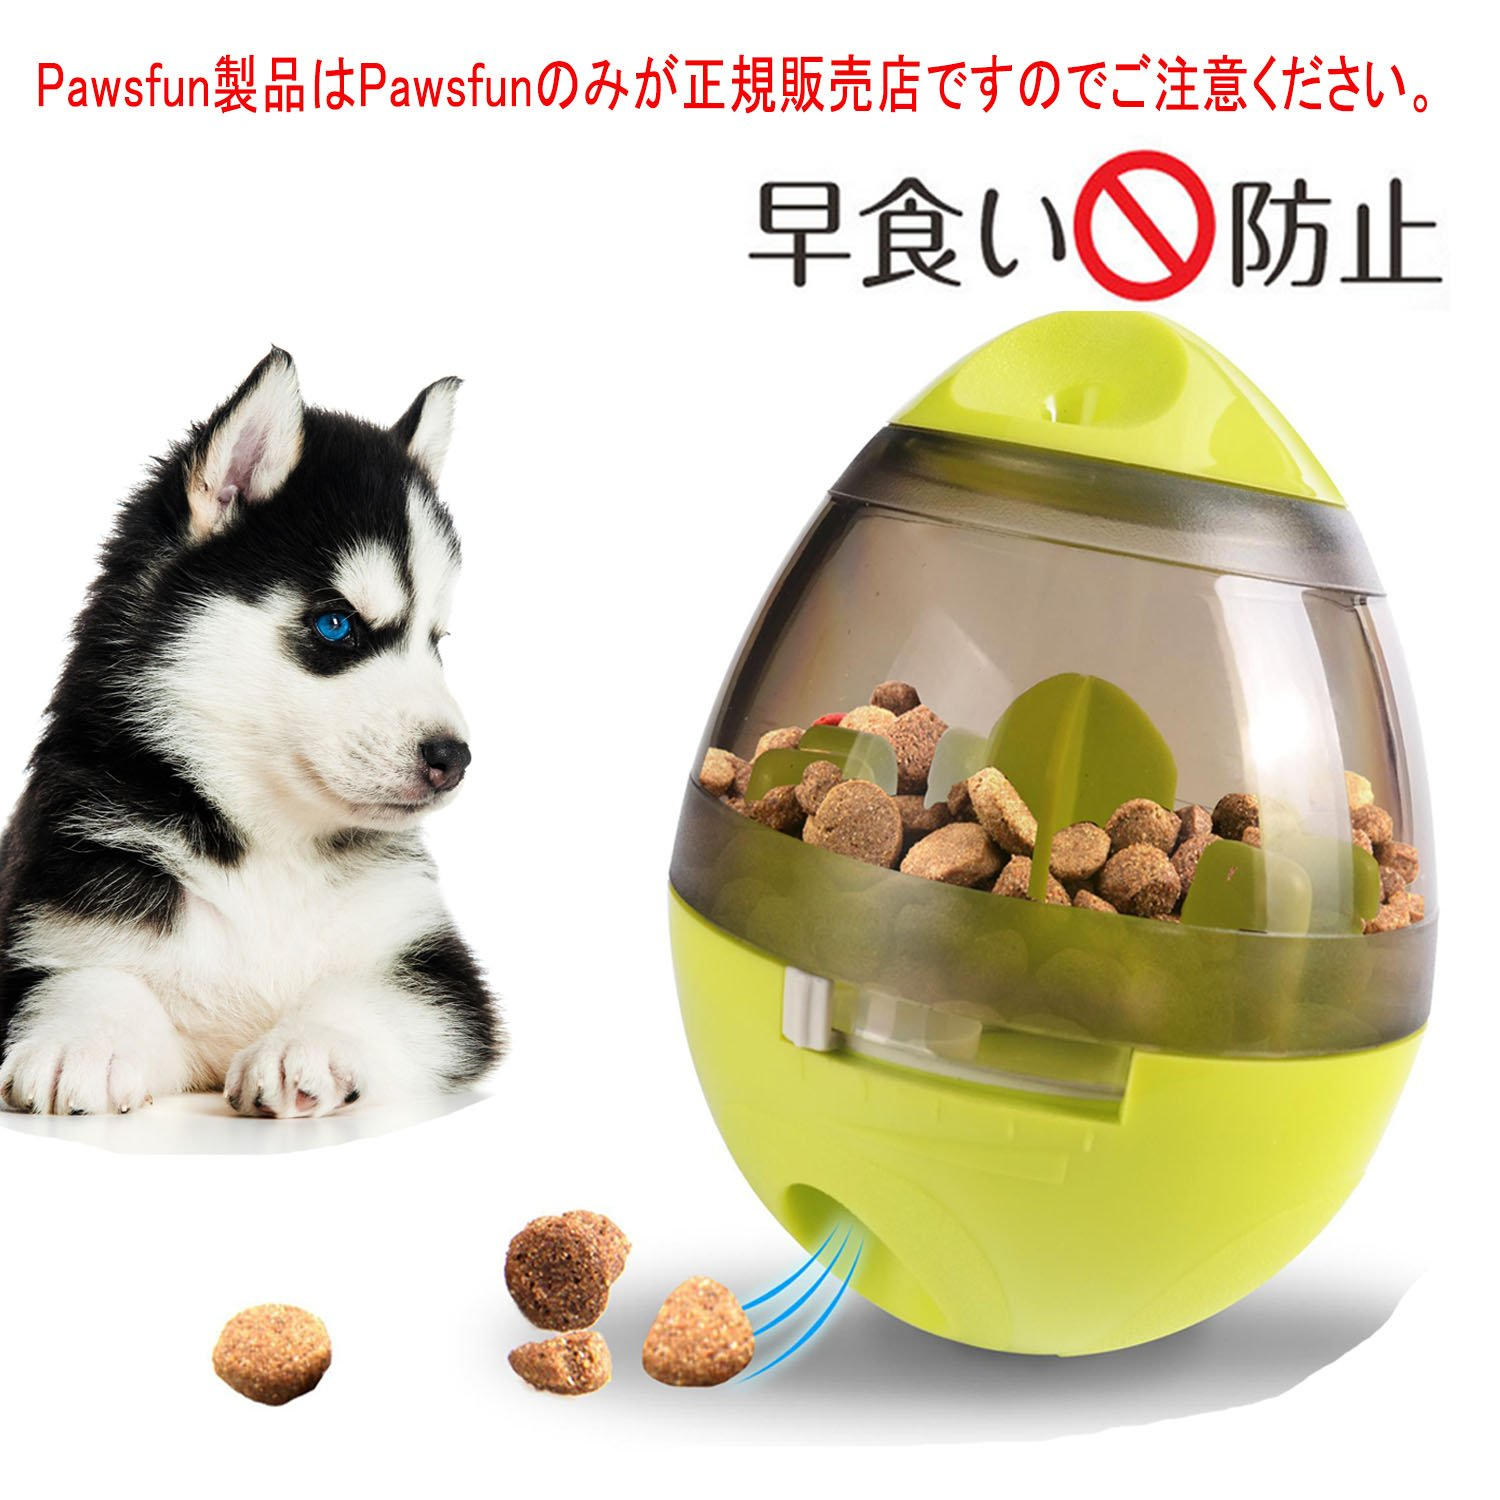 PAWSFUN toys not fall eating prevention bait put tableware snack ball bait put educational toys snack ball for the dog eggs educational toys IQ step ball lack of exercise eliminate pet toys